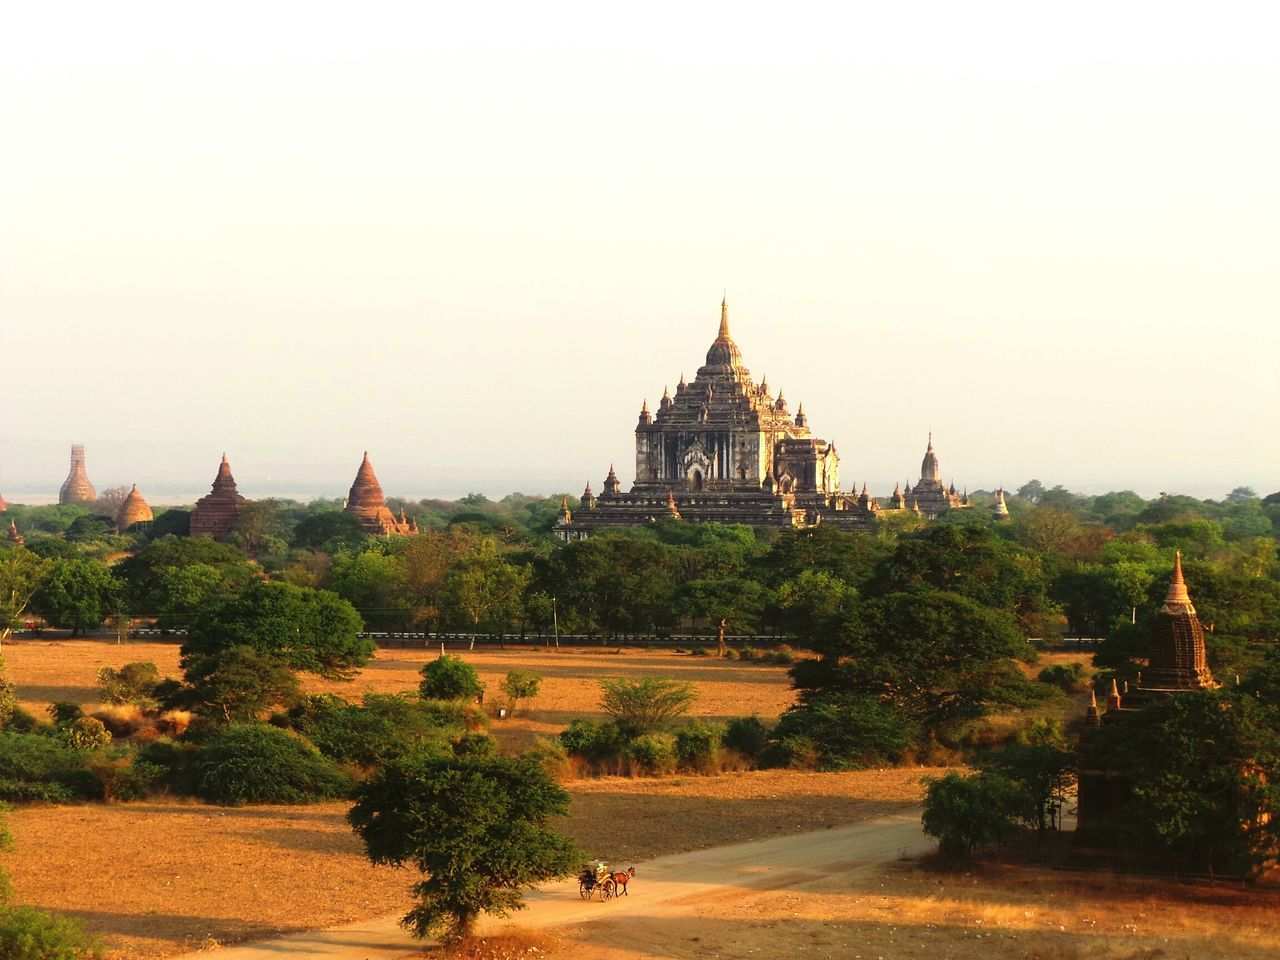 Back in time. Magical. Architecture History Tranquility Scenics The Past Place Of Worship Outdoors Horse Cart Horse Wagon Temple - Building Temple Landscape Myanmar Myanmararchitecture Bagan Bagan In Myanmar Back In Time Sunlight